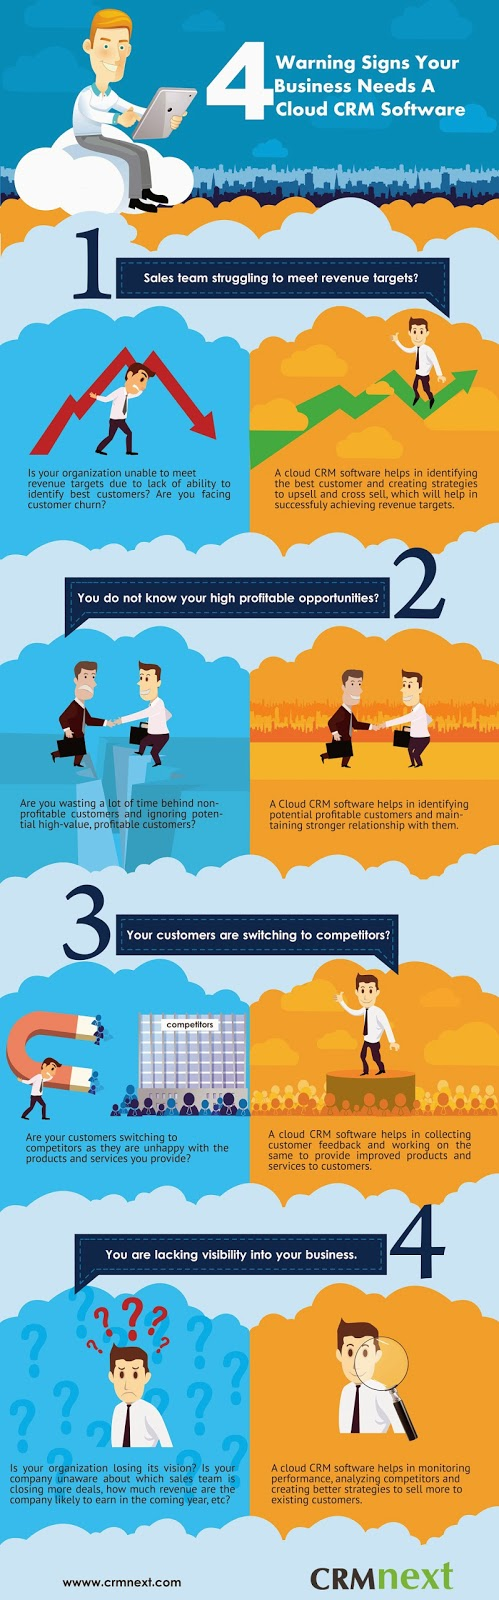 4 Warning Signs Your Business Needs A Cloud CRM Solution